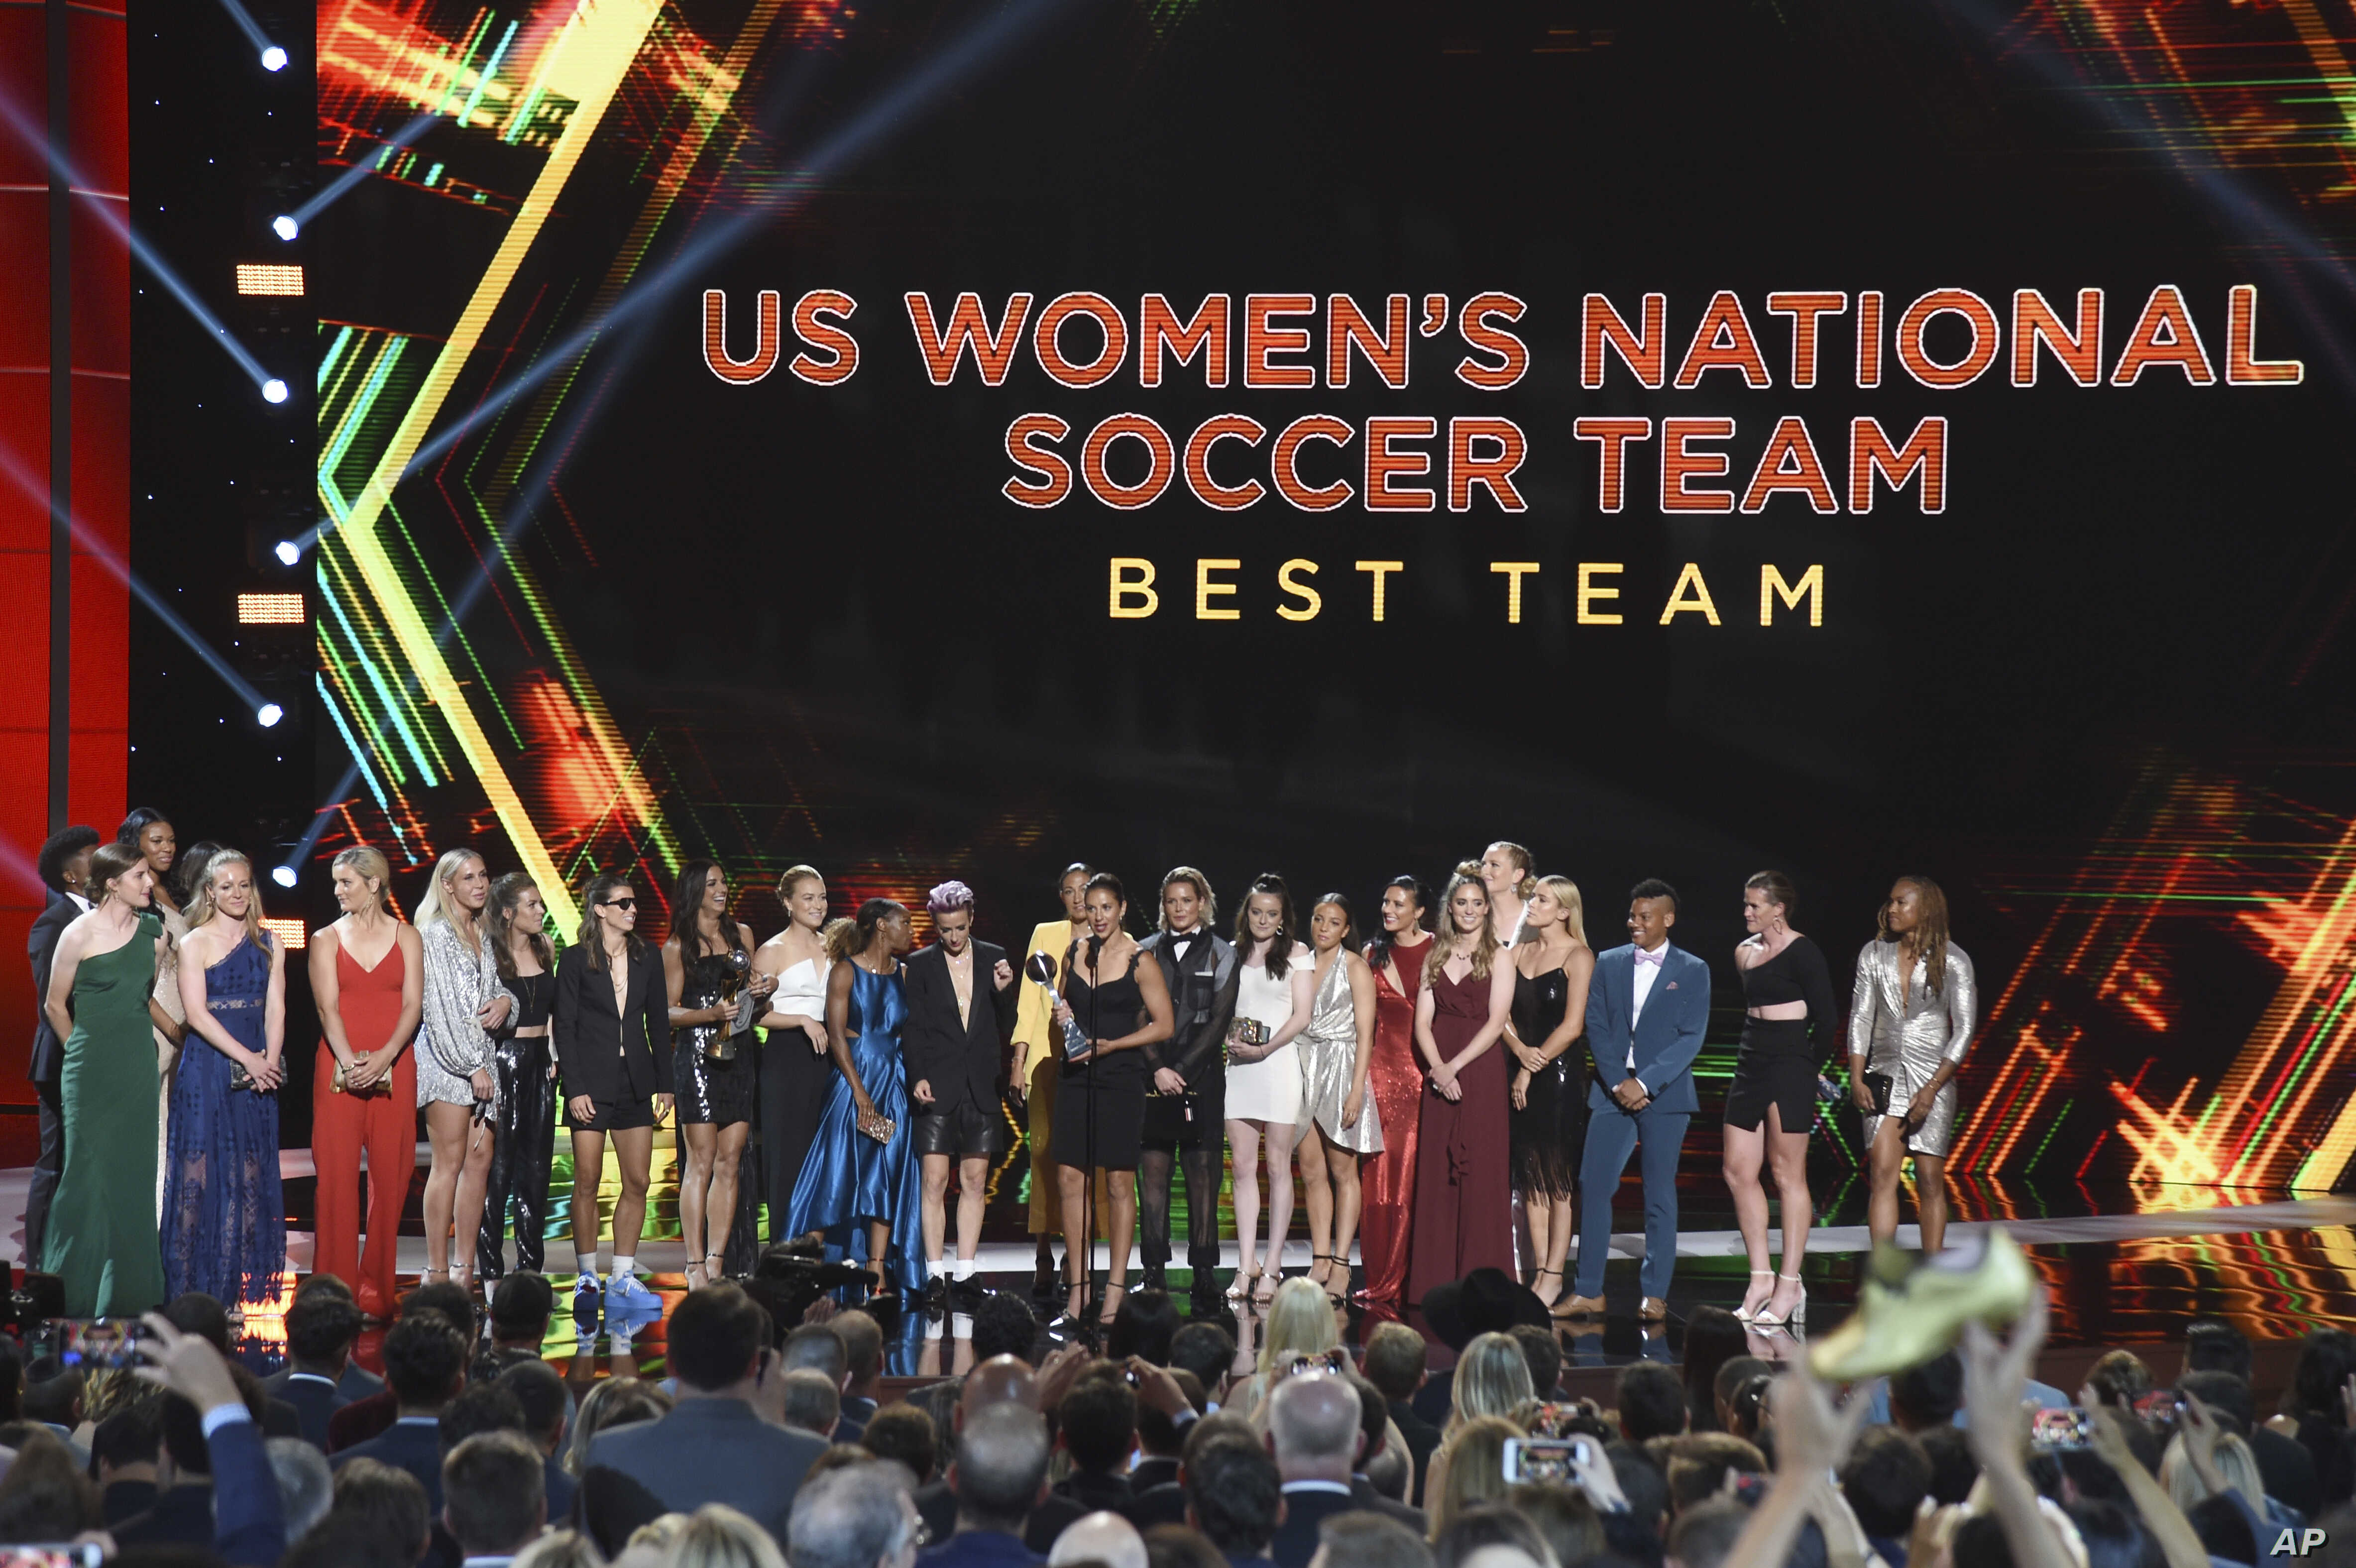 The U.S. women's national soccer team accepts the award for best team at the ESPY Awards, July 10, 2019, at the Microsoft Theater in Los Angeles.